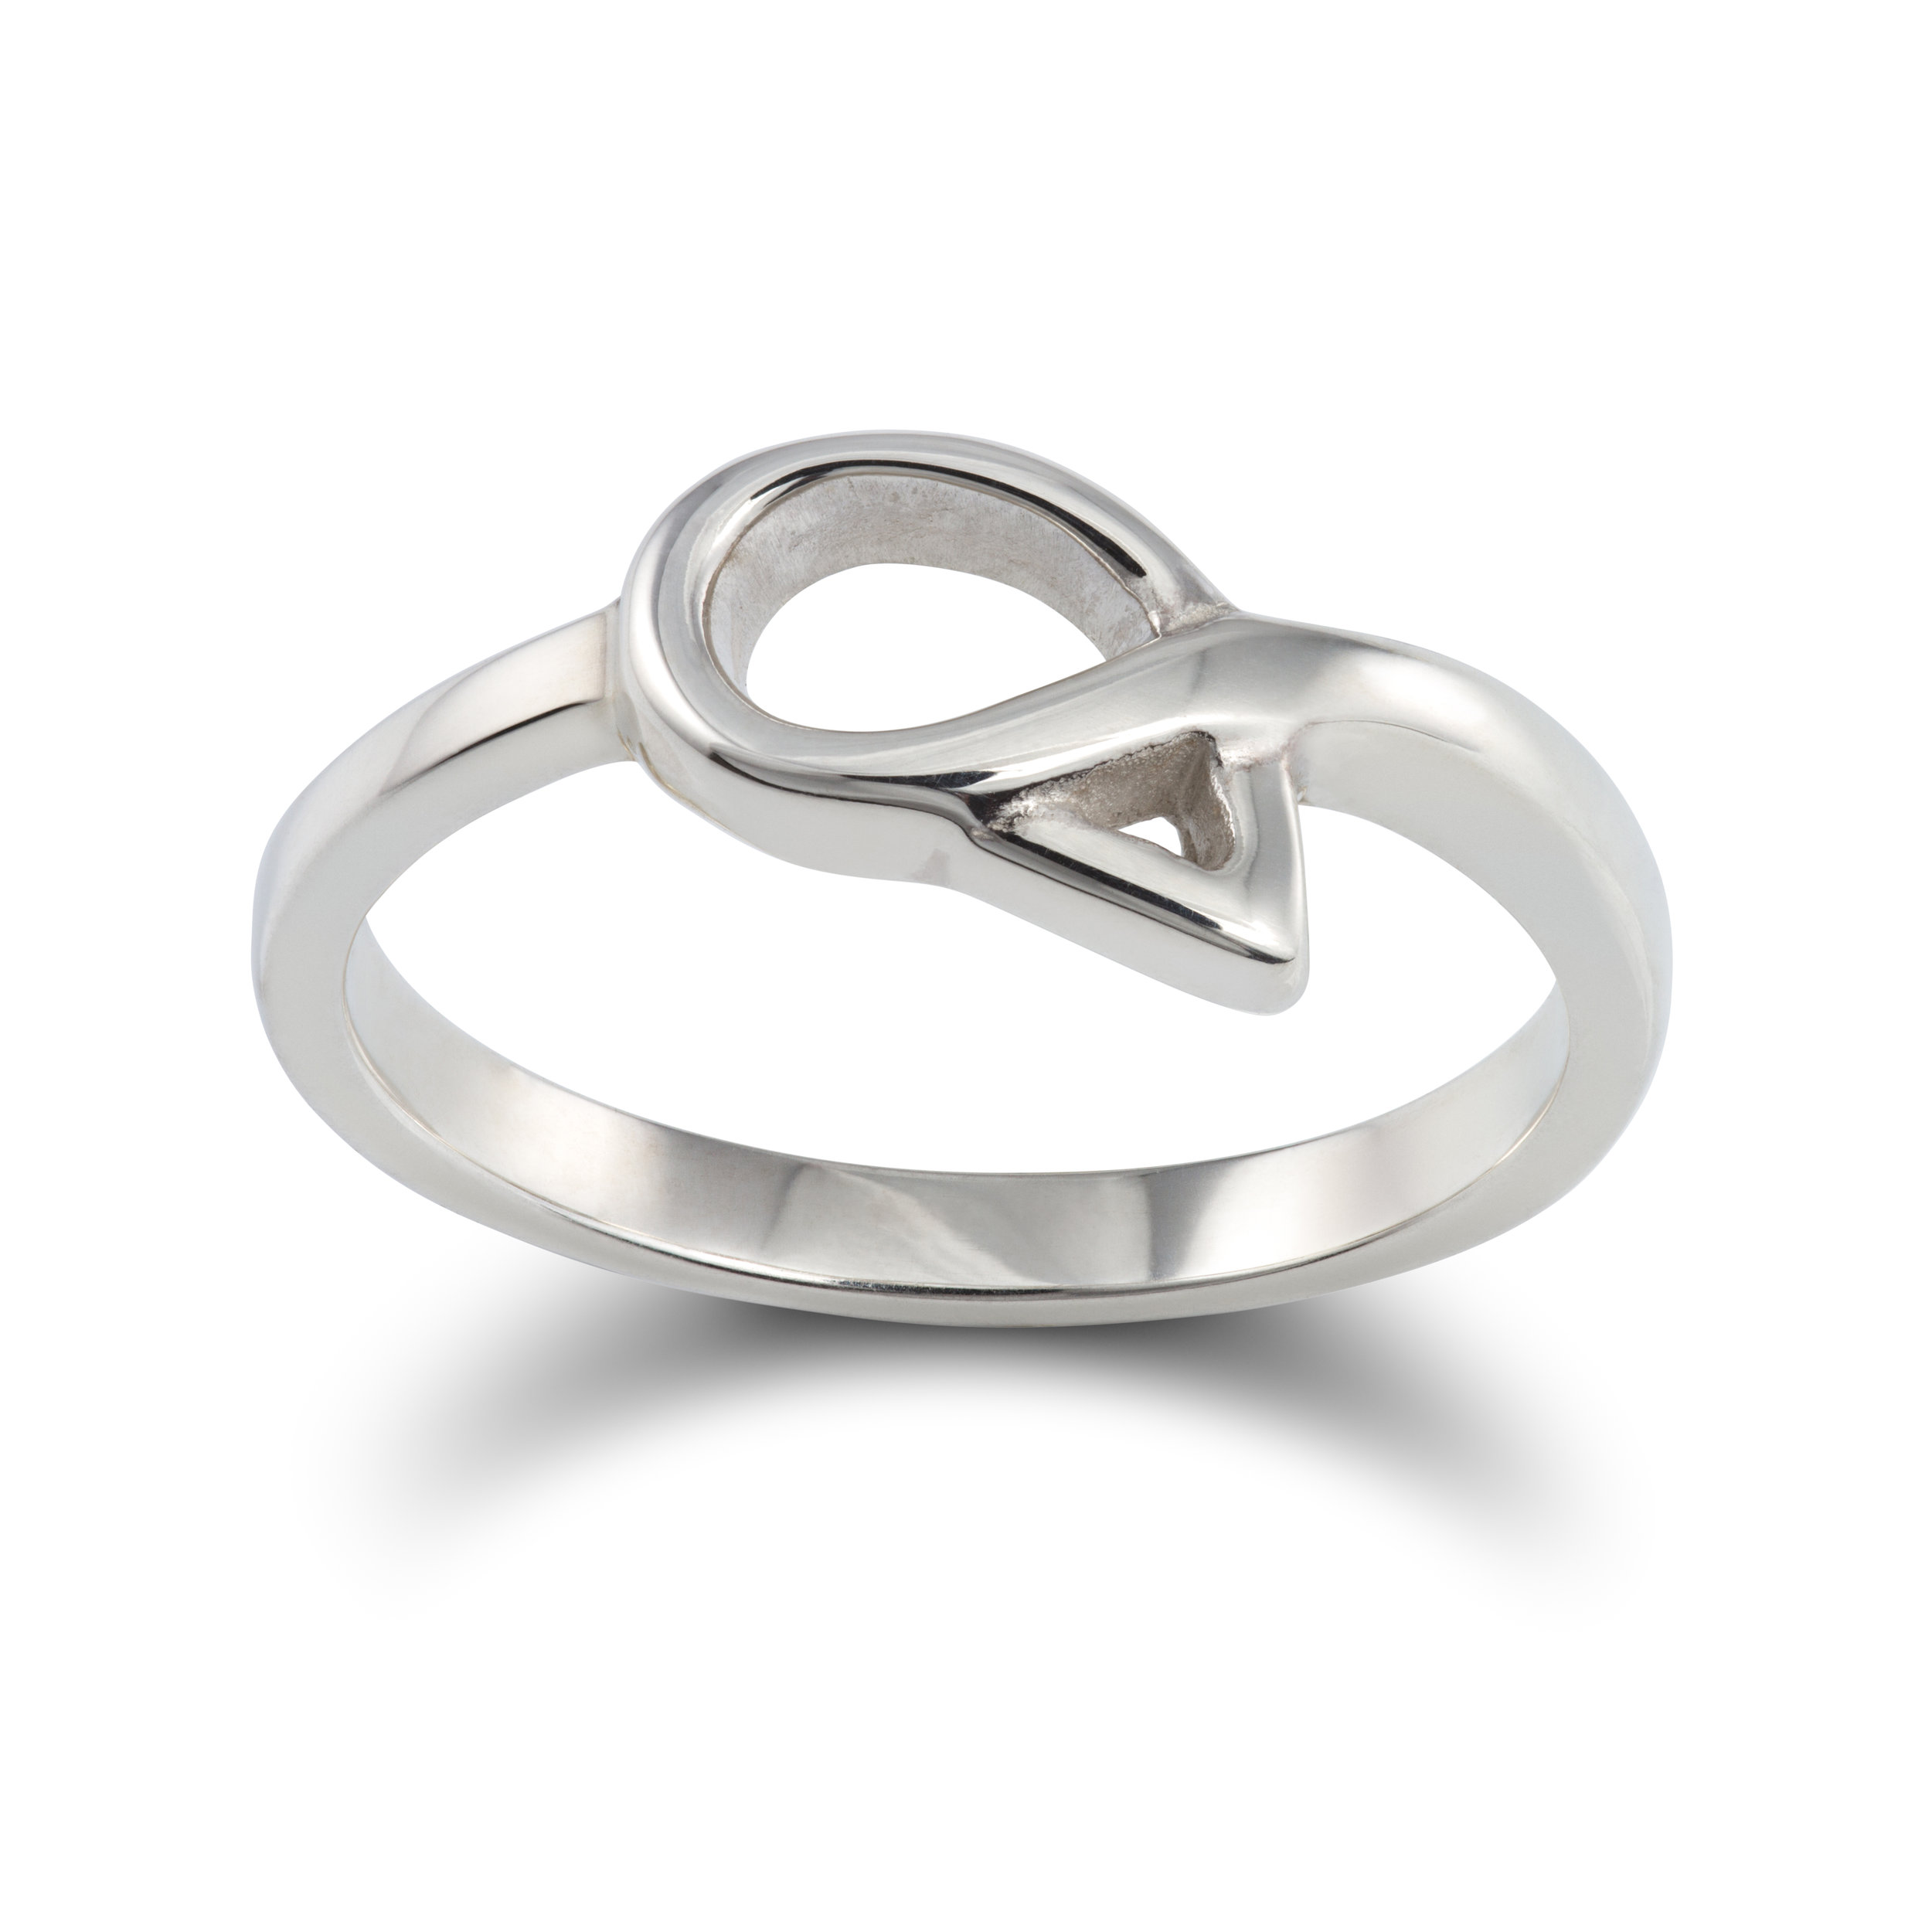 Silver ring - £120